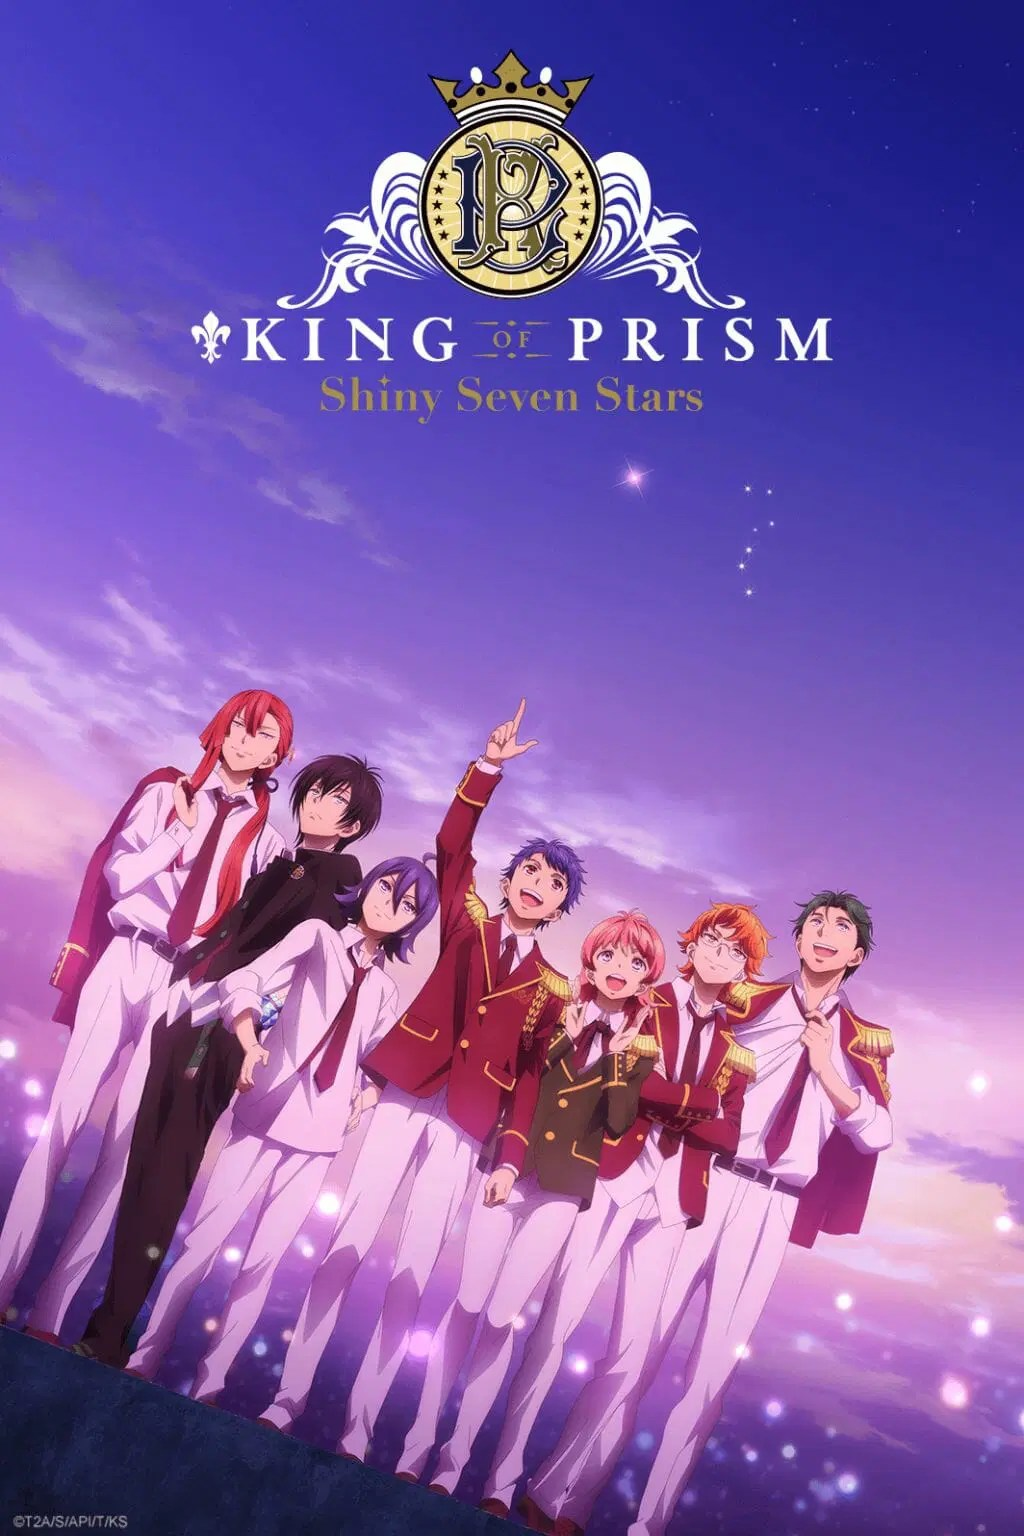 King of Prism Shiny Seven Stars Anime Visual